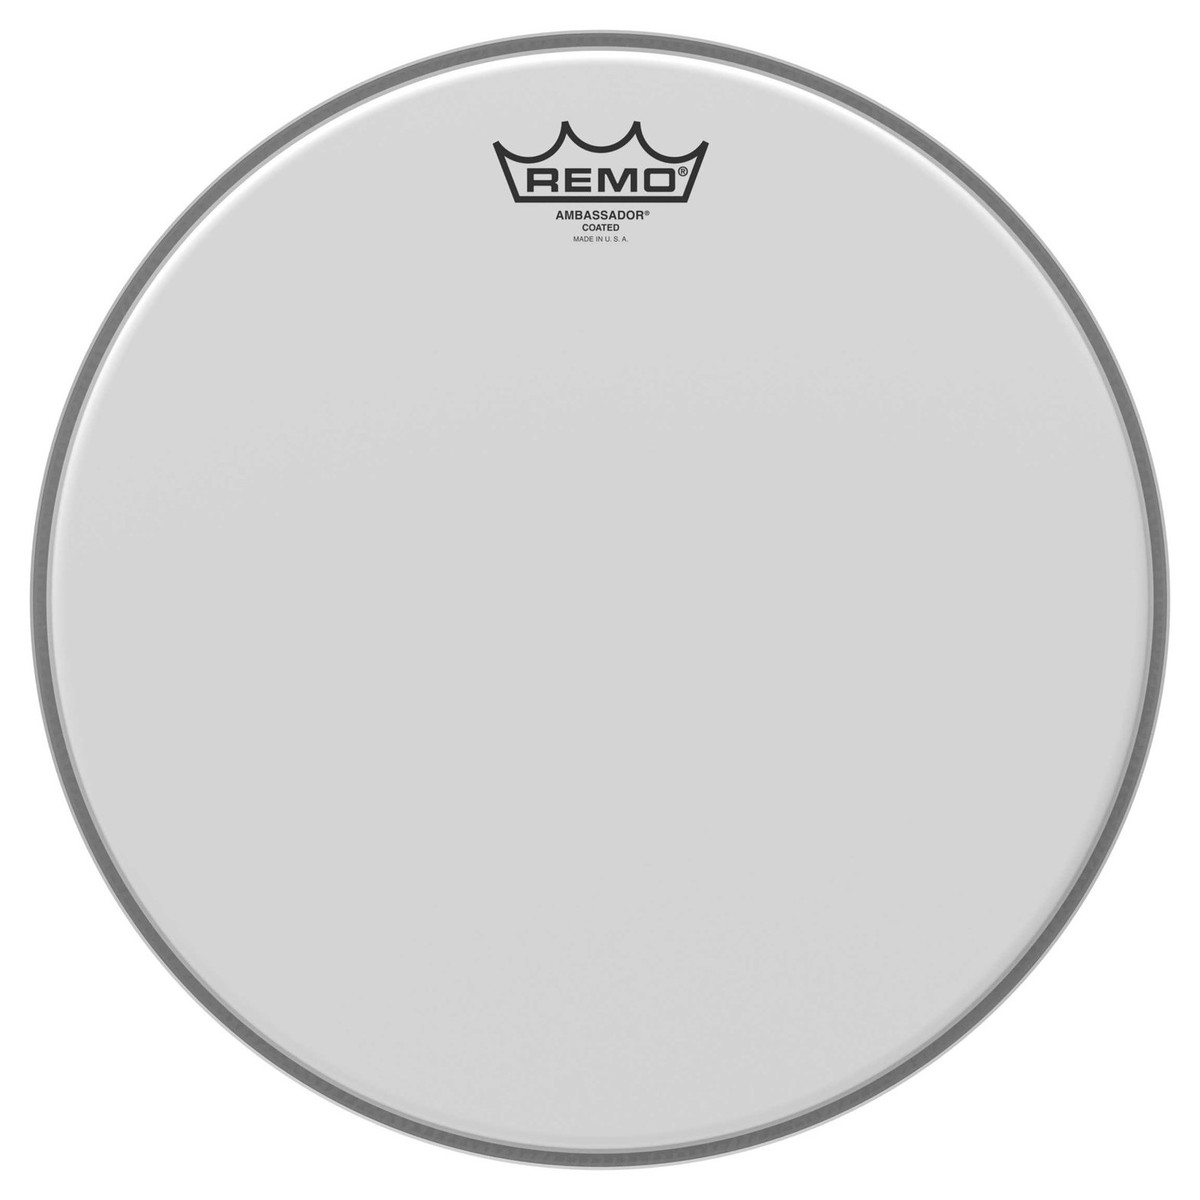 Remo Ambassador Coated 22 Bass Drum Head